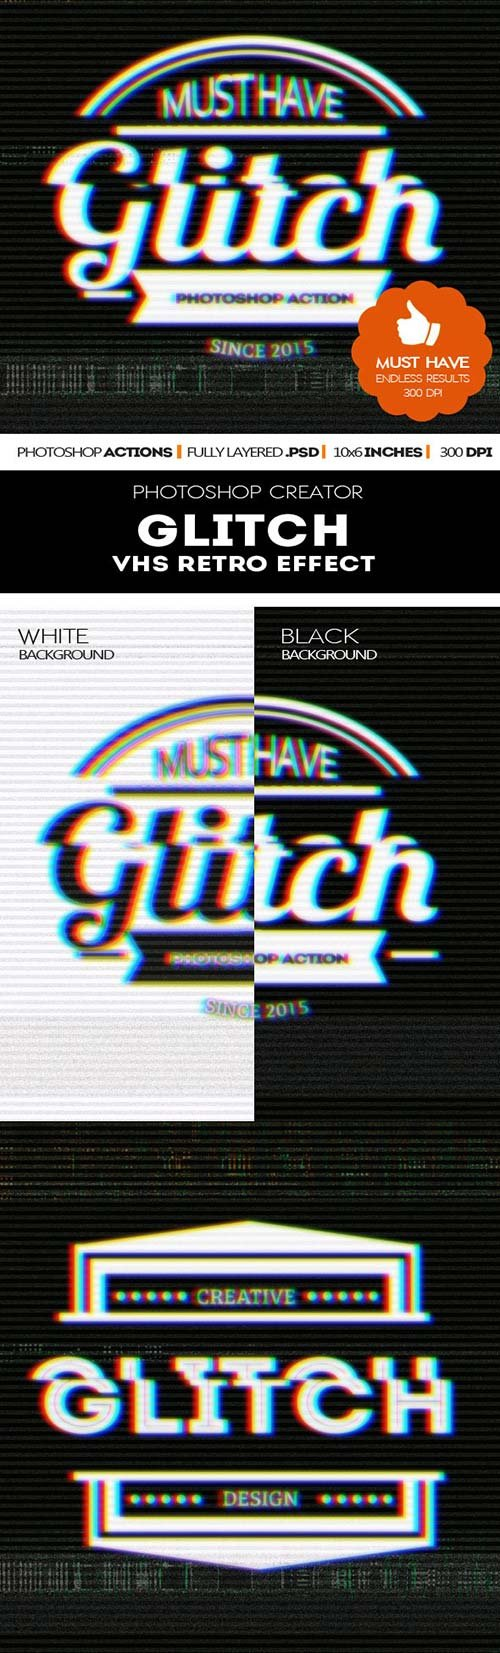 GraphicRiver Glitch VHS Corrupt Image Effect Photoshop Actions